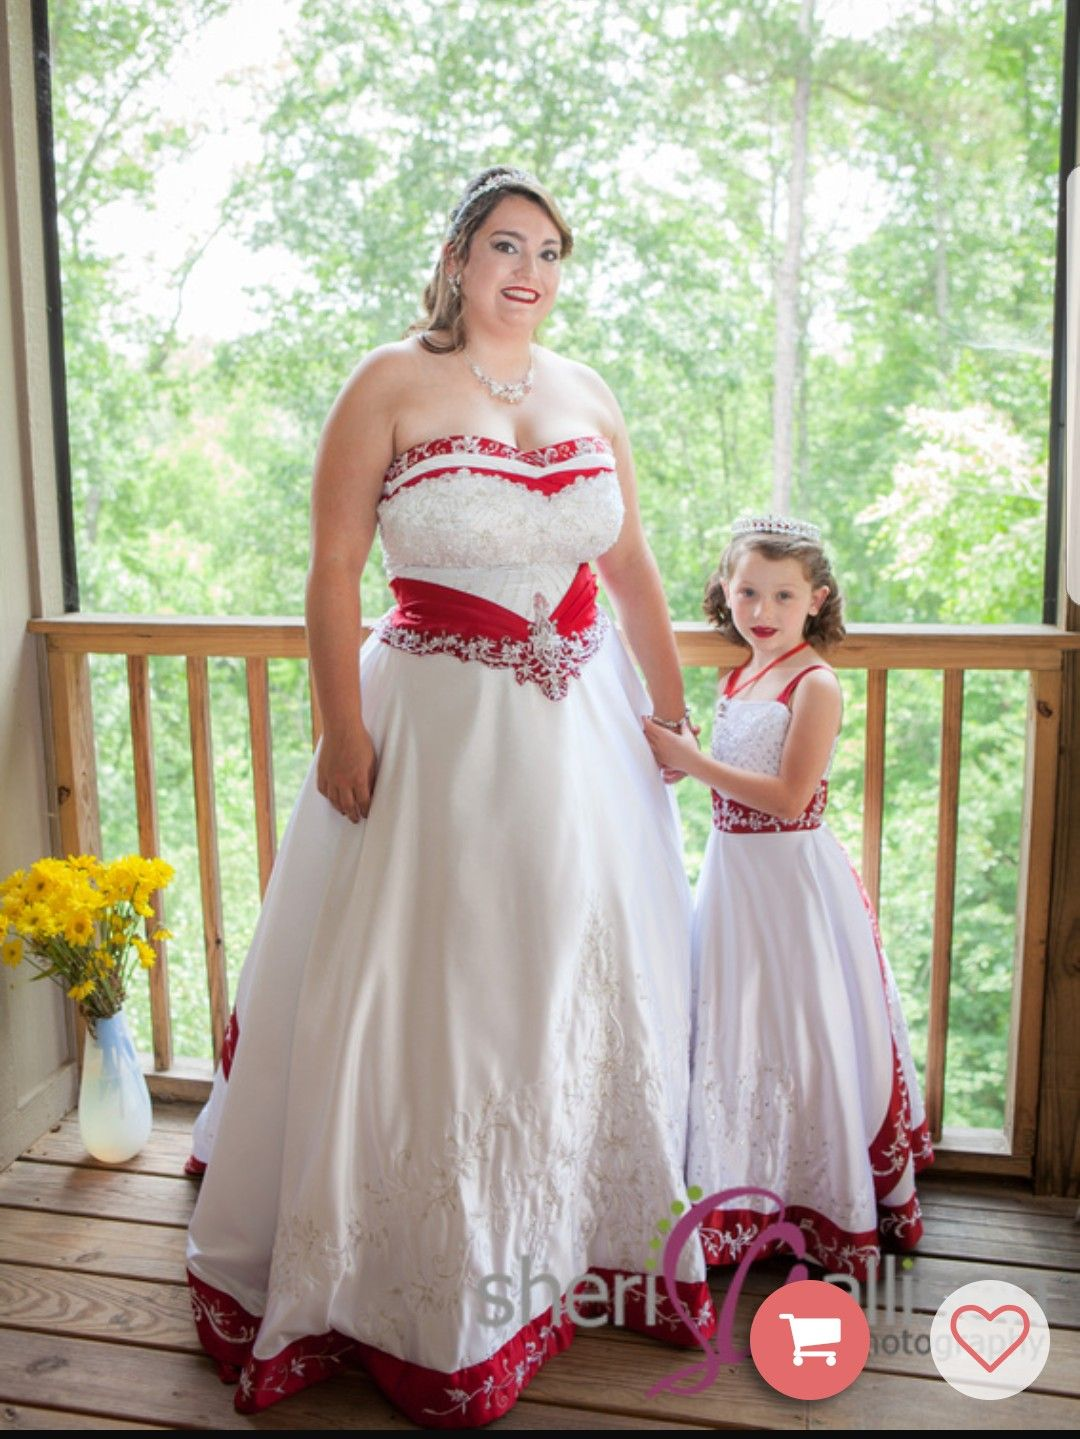 Beautiful Red And White Bride And Matching Miniature Bride Dresses